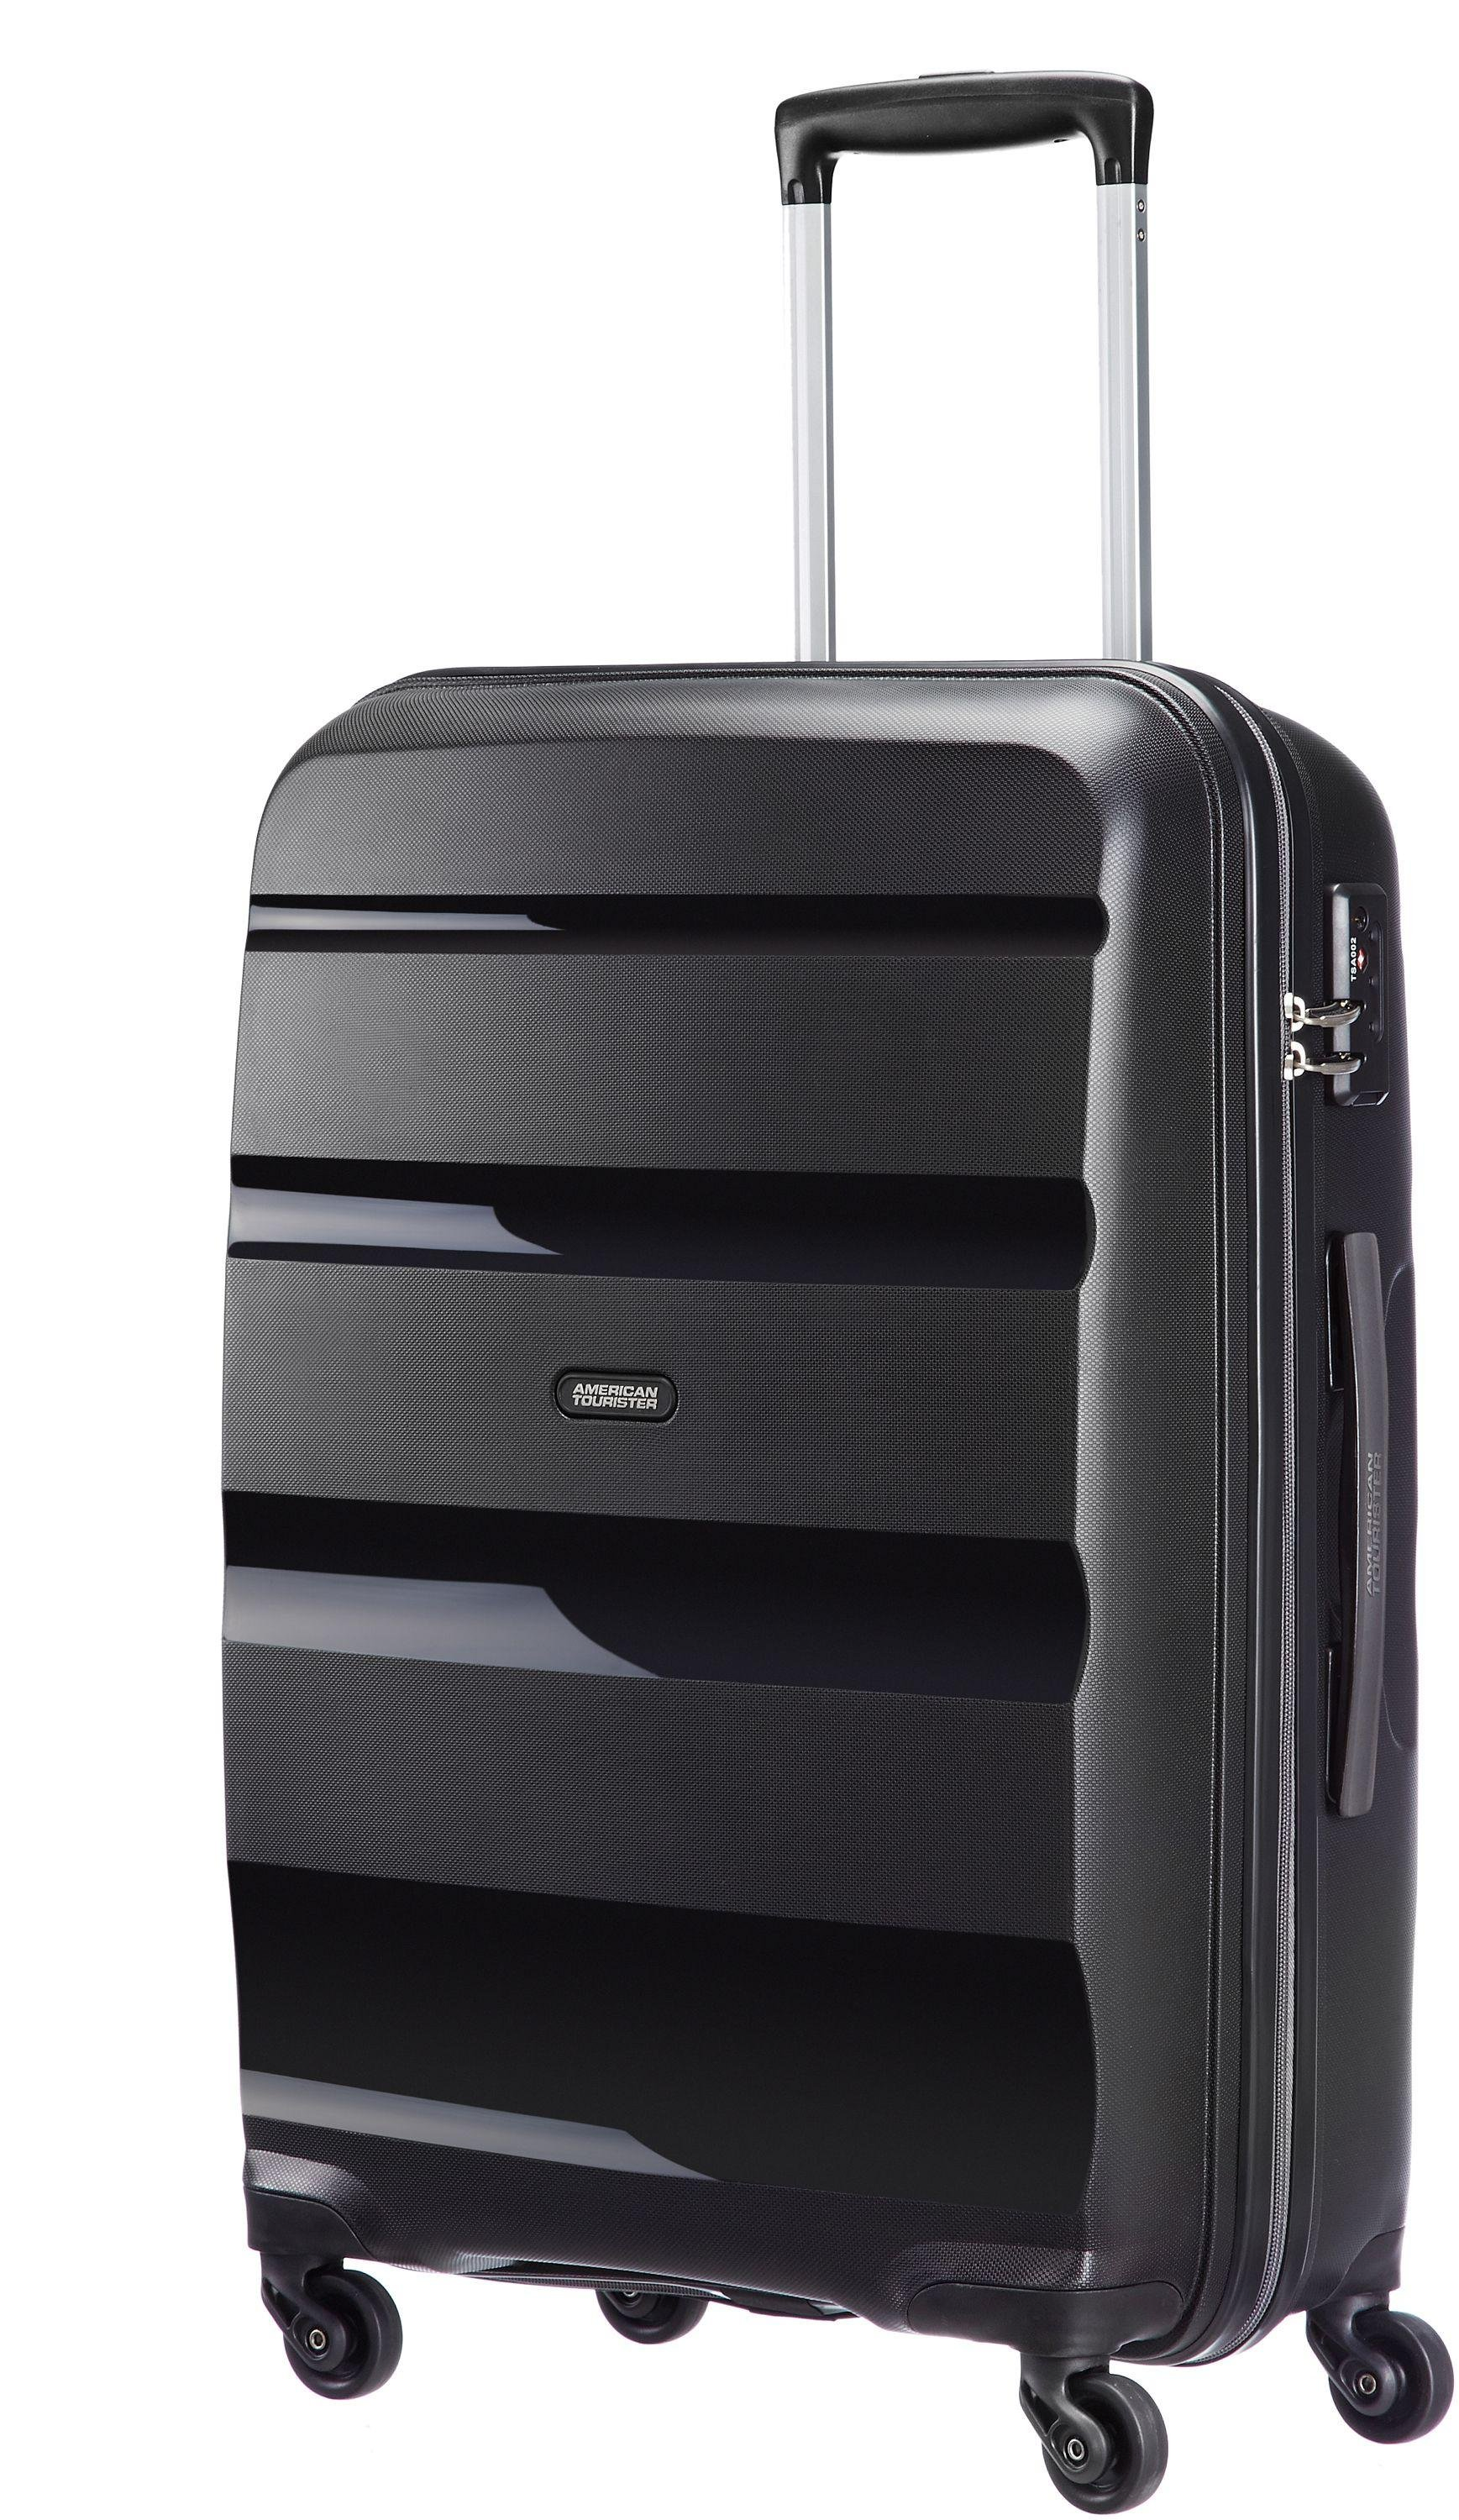 American Tourister Medium 4 Wheel Hard Suitcase - Black